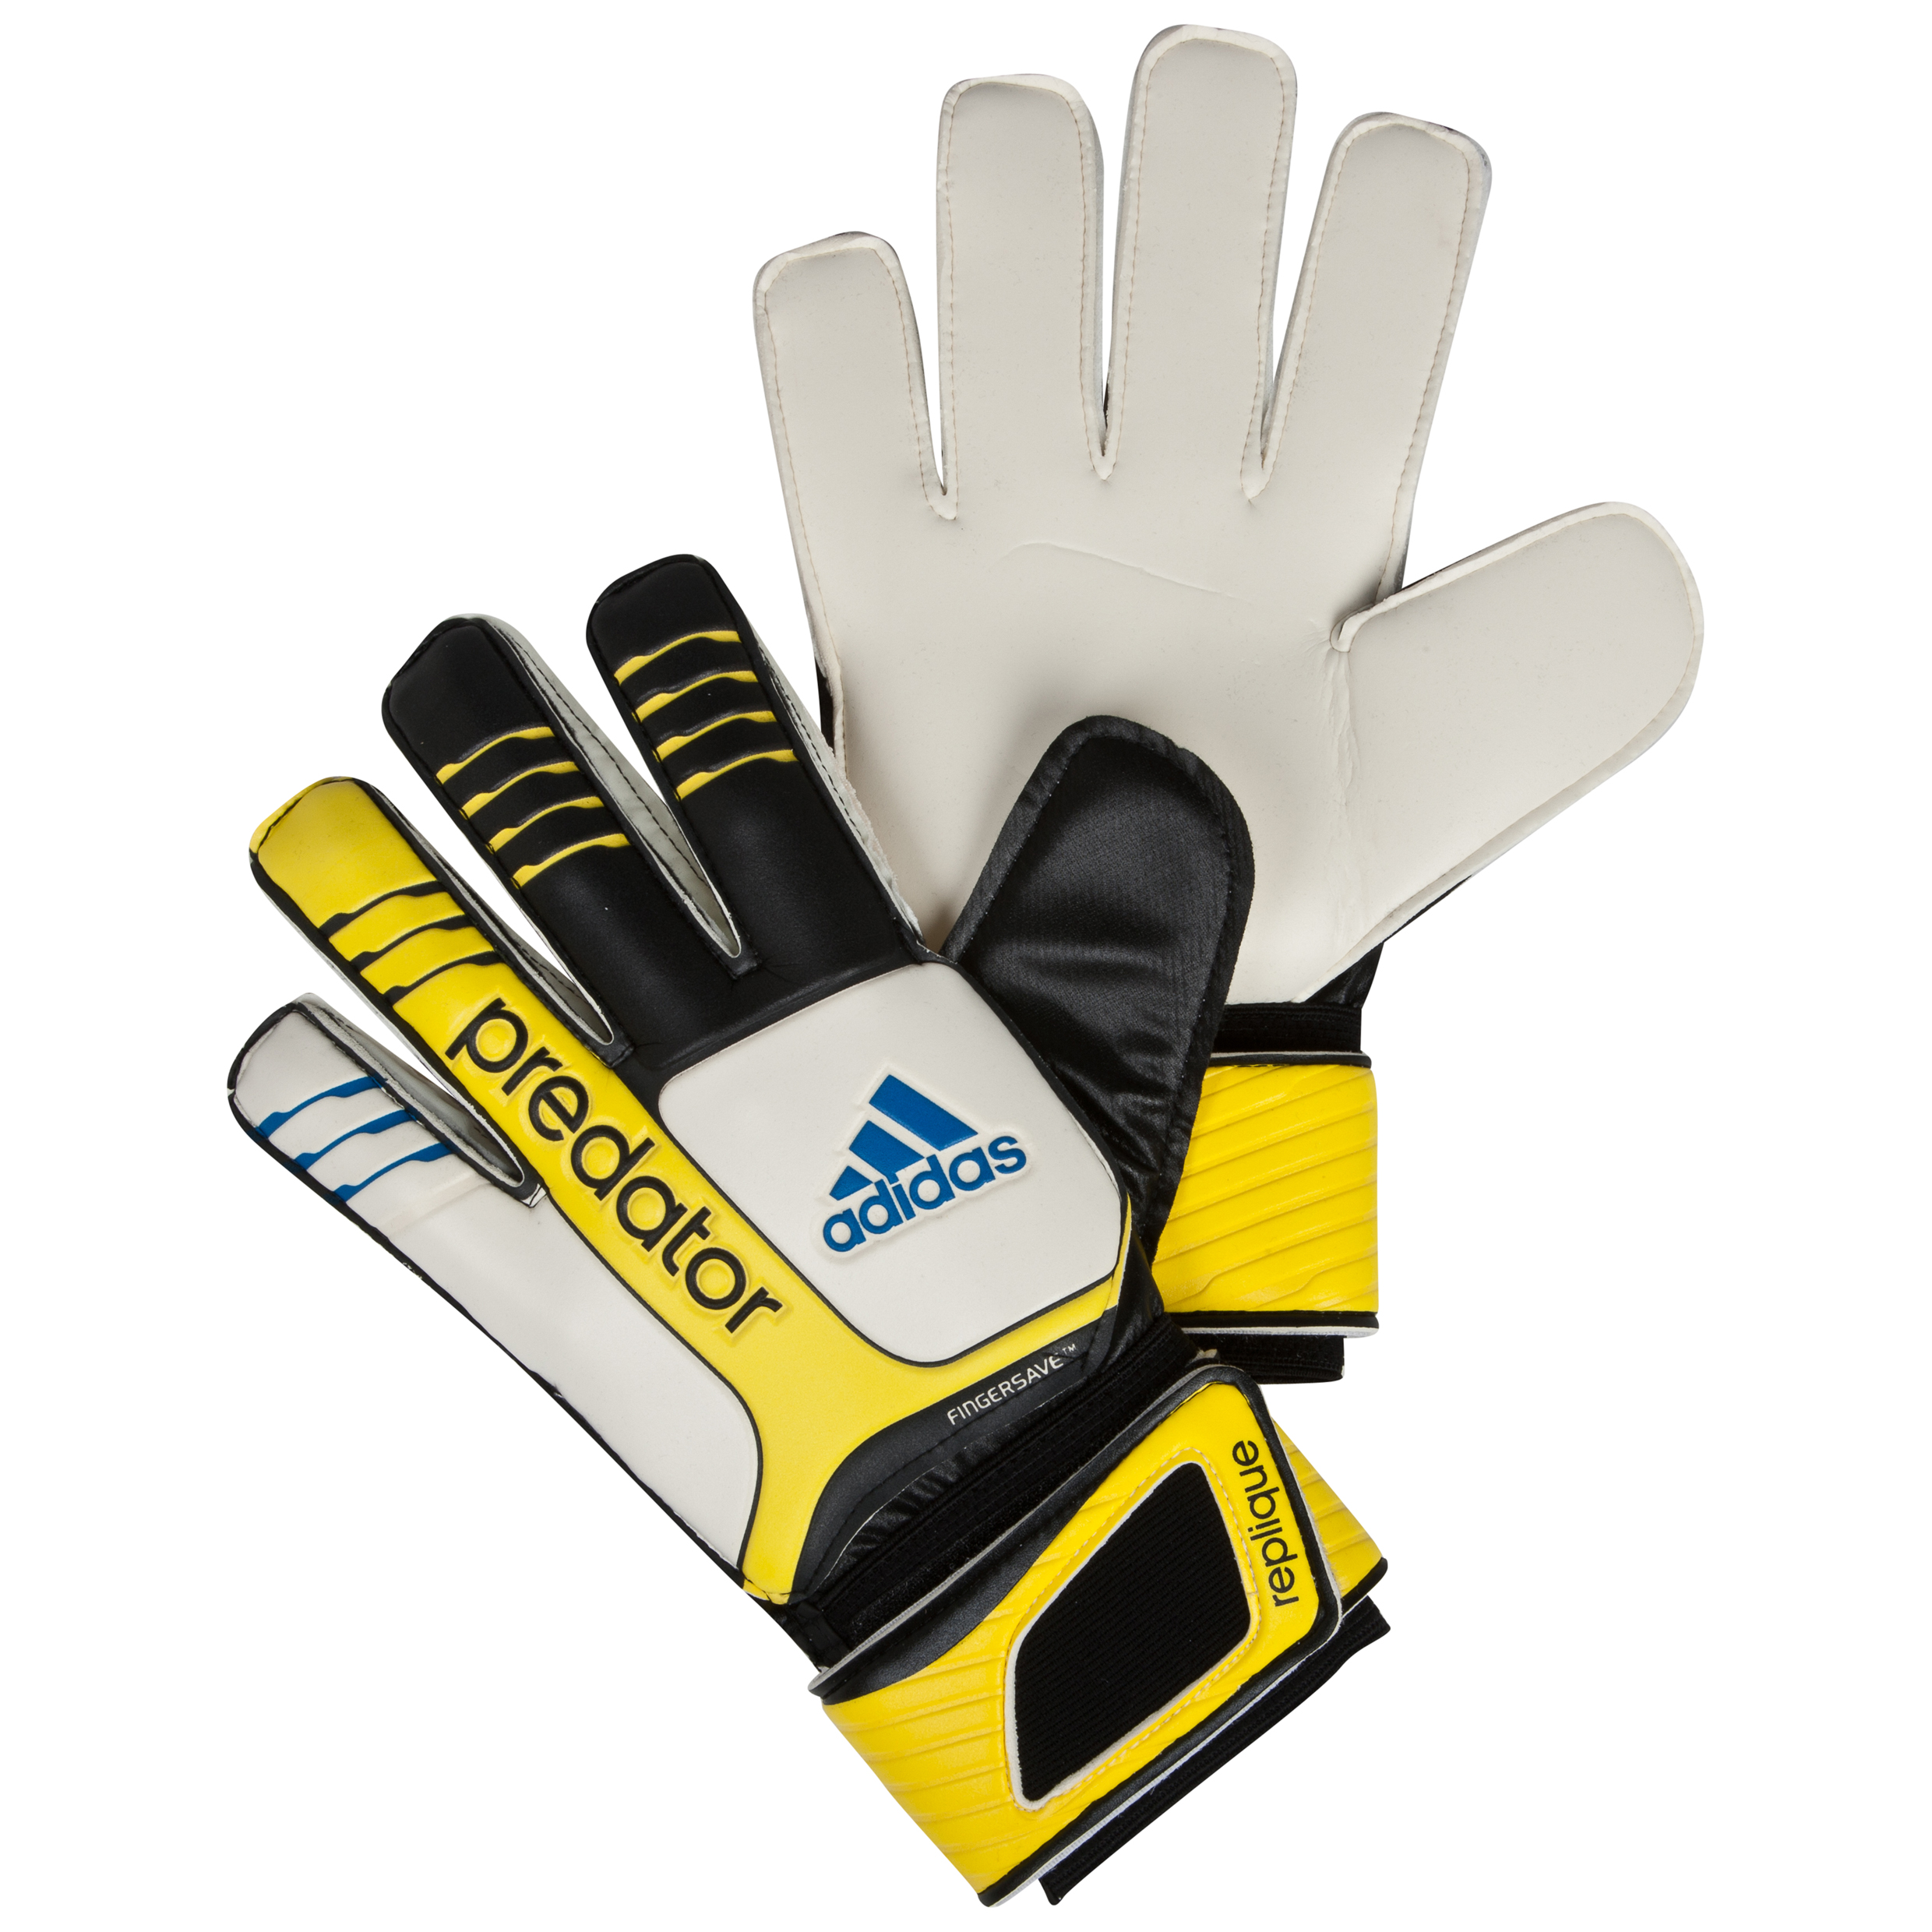 Guantes portero Pred FS Replique adidas - Negro/blanco/amarillo/azul